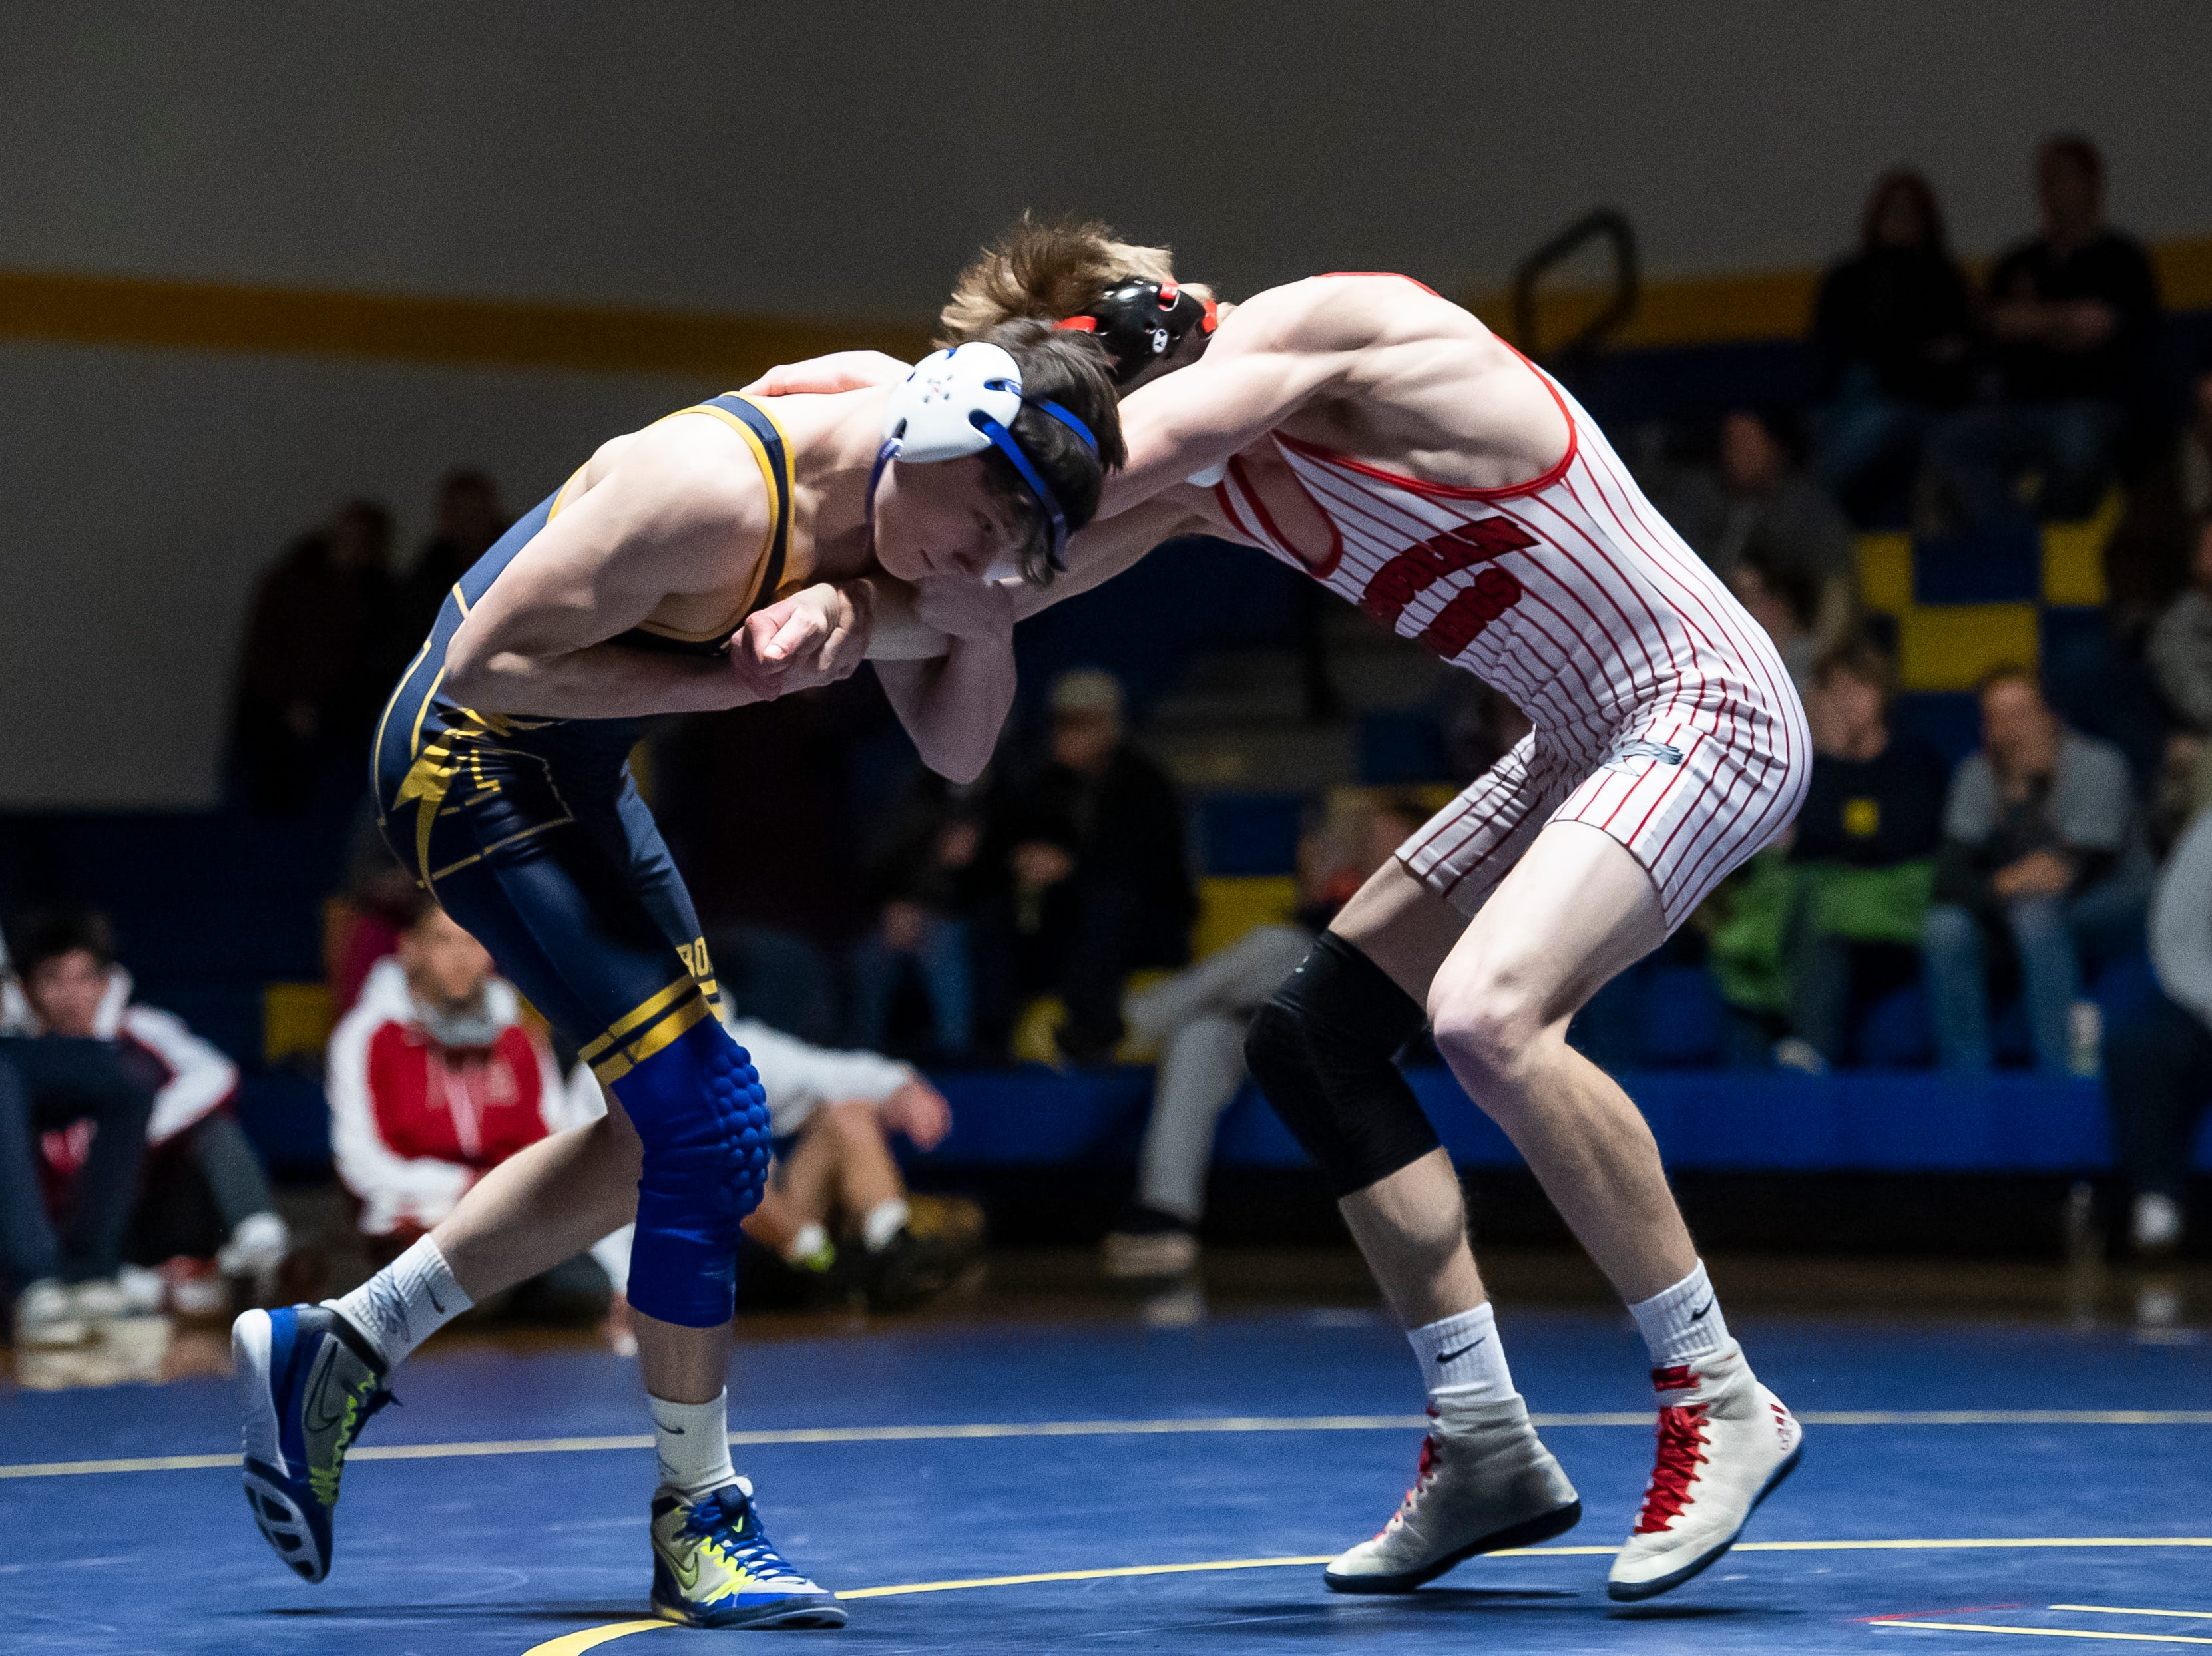 Bermudian Springs' Tanner Althoff, right, wrestles Littlestown's Jacob Yealy in the 145-pound bout on Thursday, January 24, 2019. Althoff won by fall as the Eagles captured the YAIAA Division 3 title with a 62-12 win.